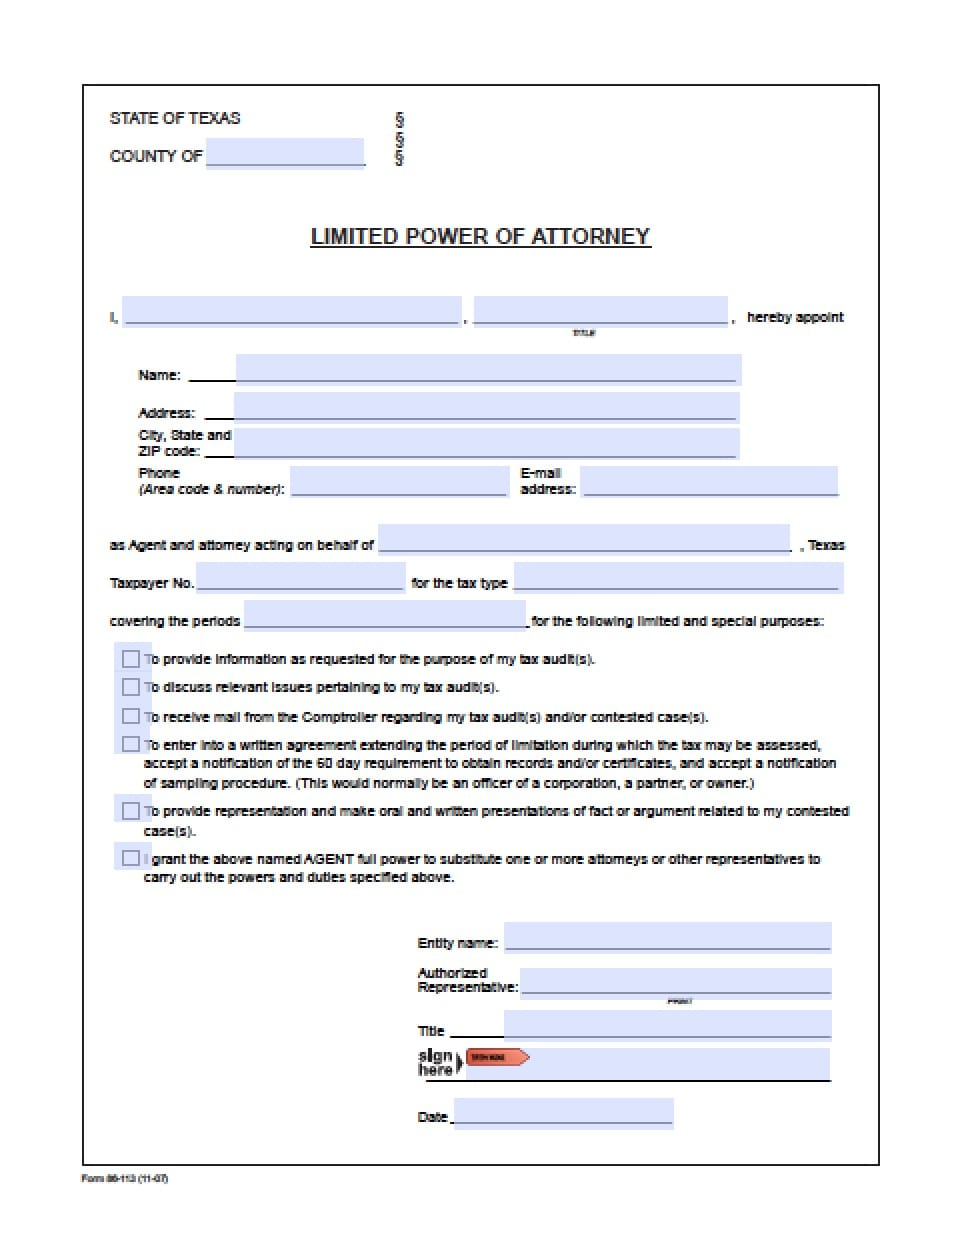 Texas Revocation Power Of Attorney Form Power Of Attorney Power